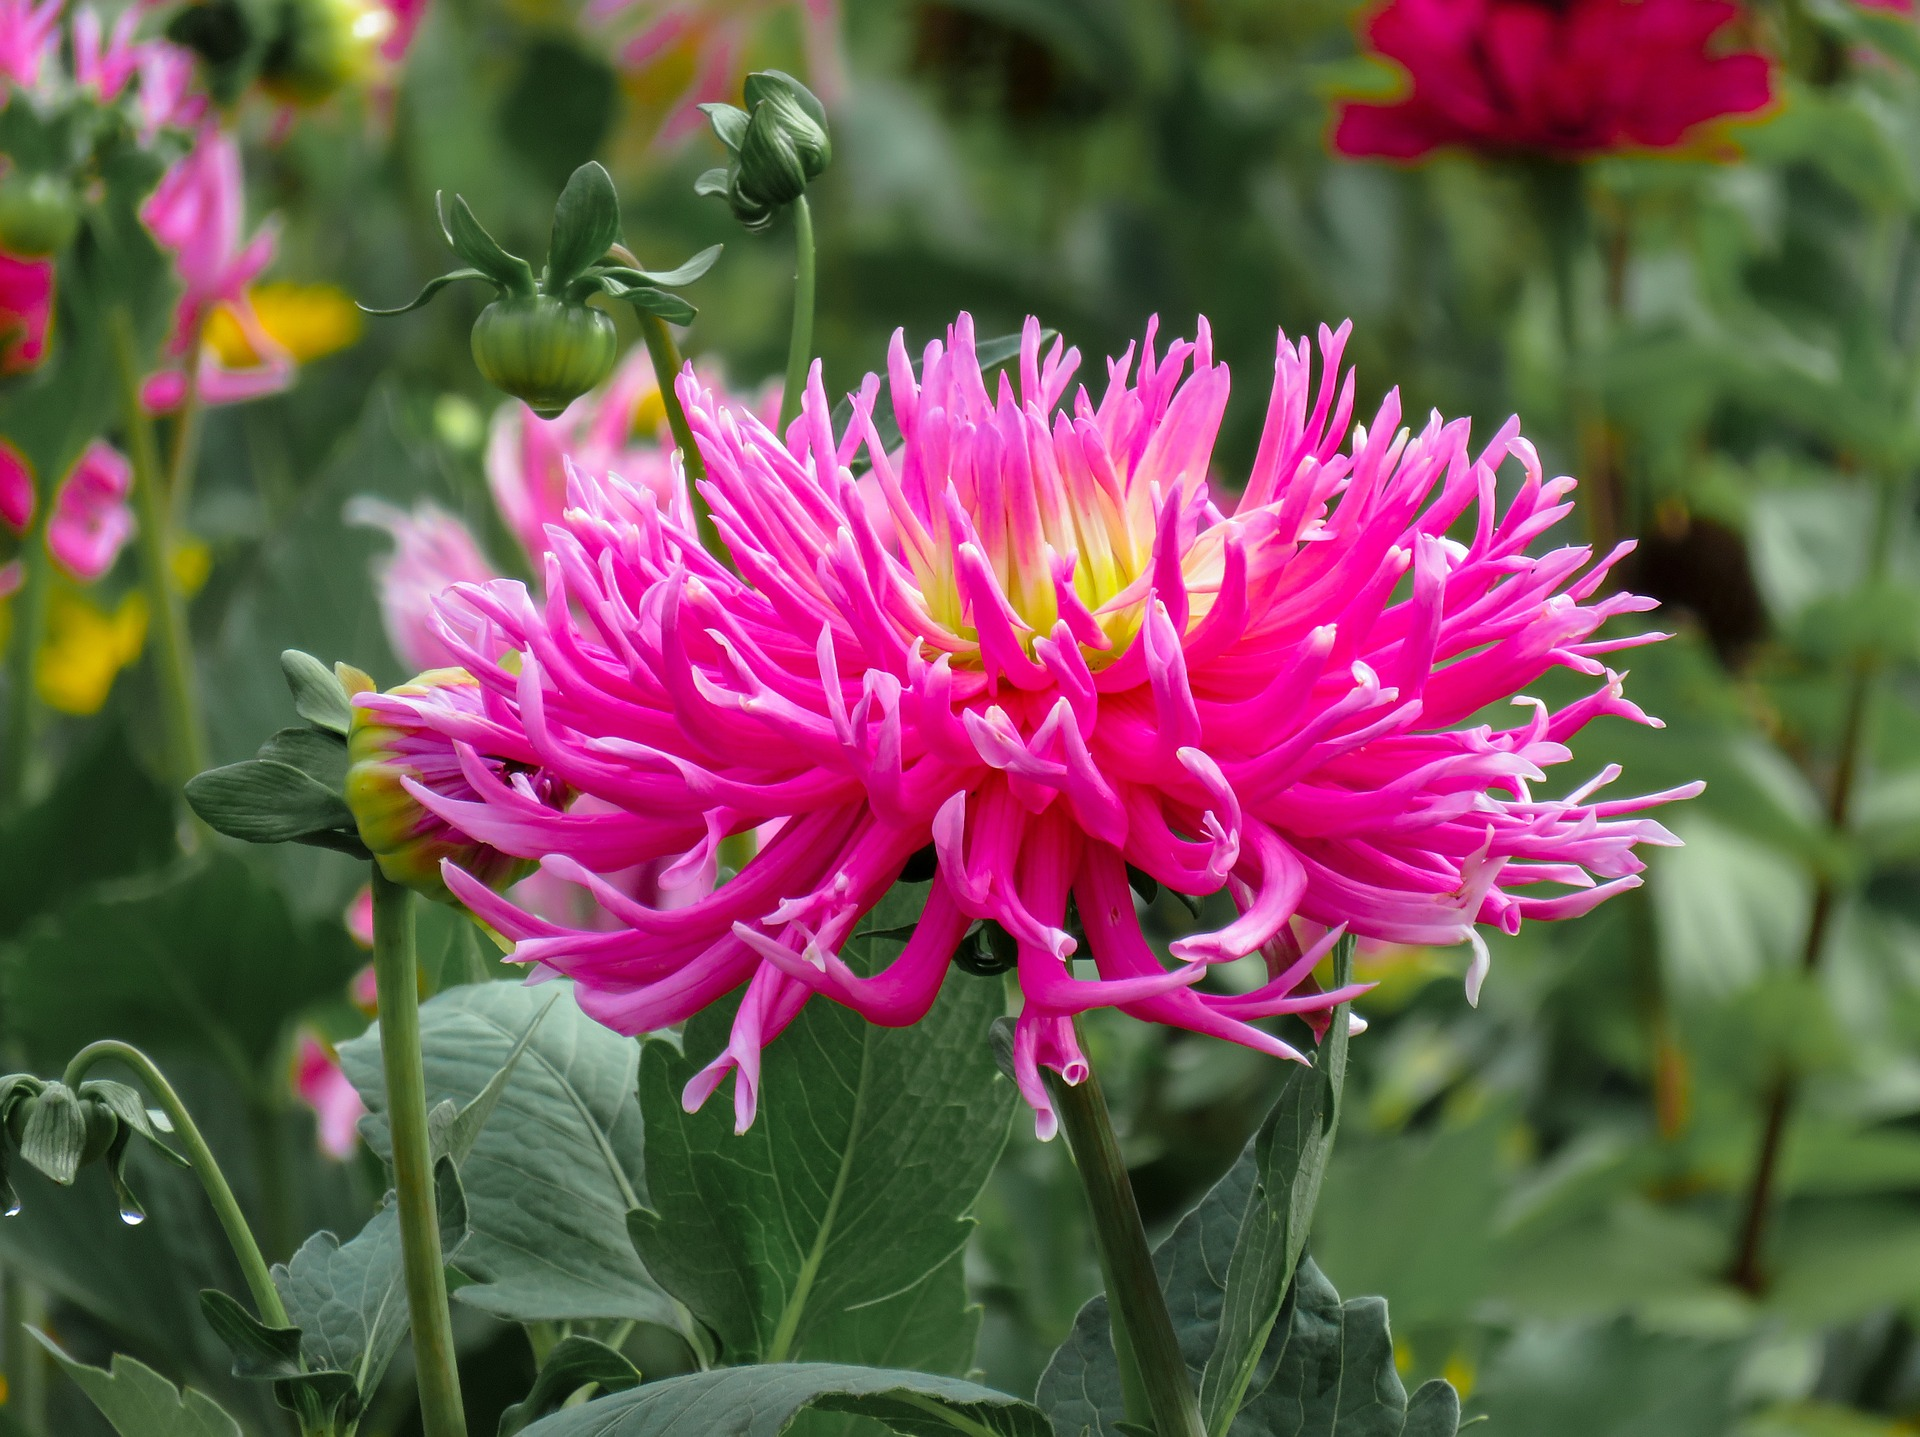 Dahlias in a garden | Stock image, St. George News